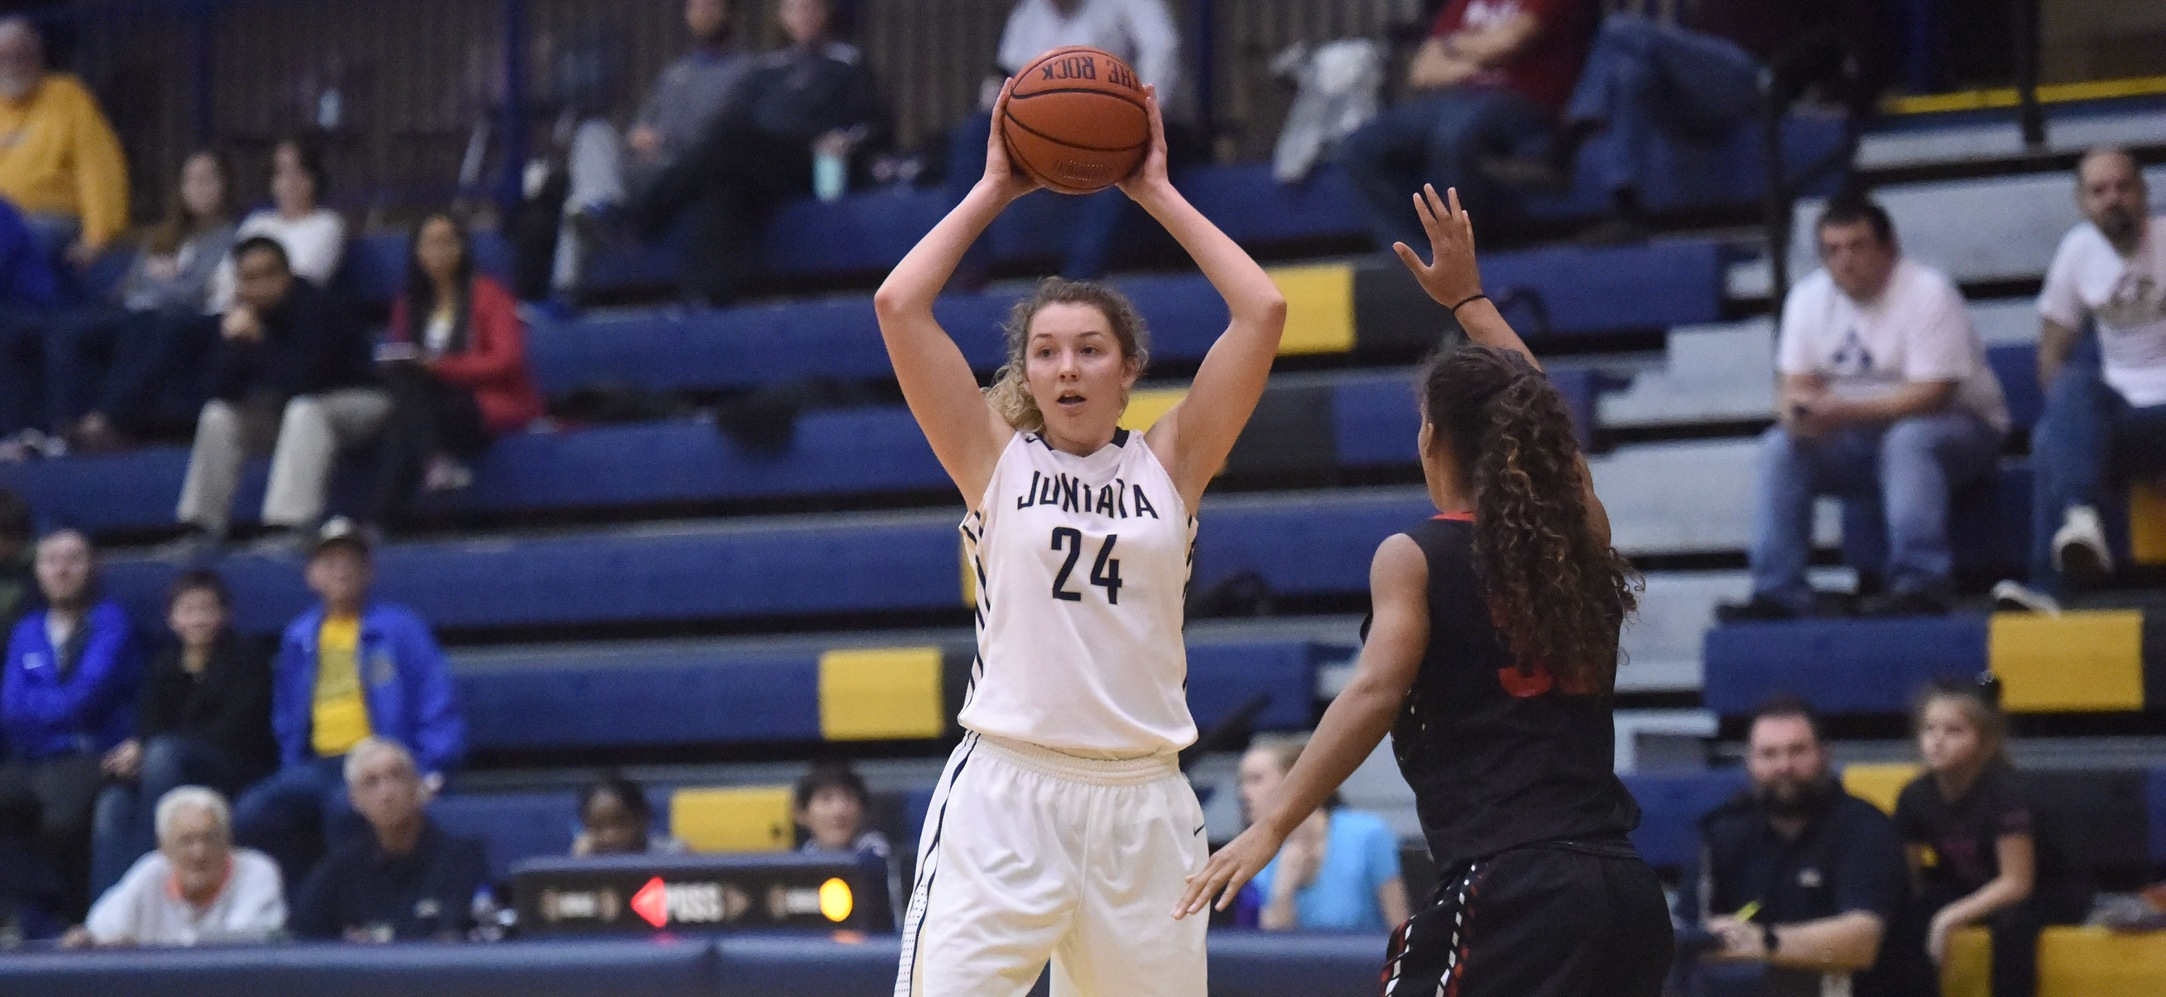 Morgan Instone had a team-high 11 points with five blocks as Juniata advanced past Piedmont in the NCAA Tournament.